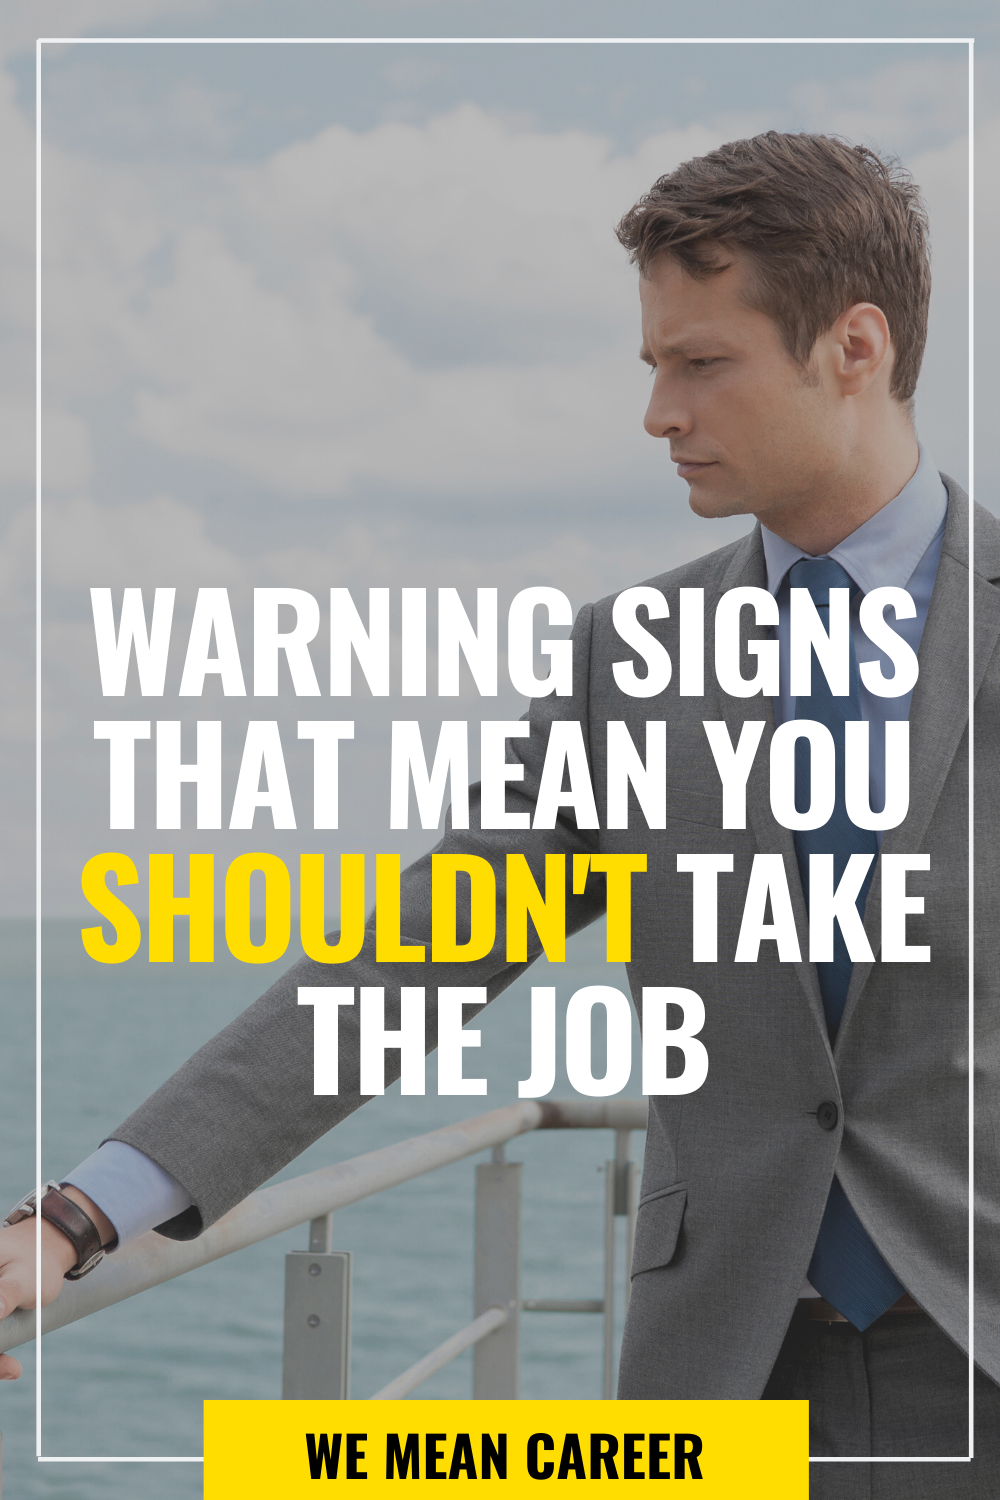 23 Warning Signs That Mean You Shouldn't Take The Job in